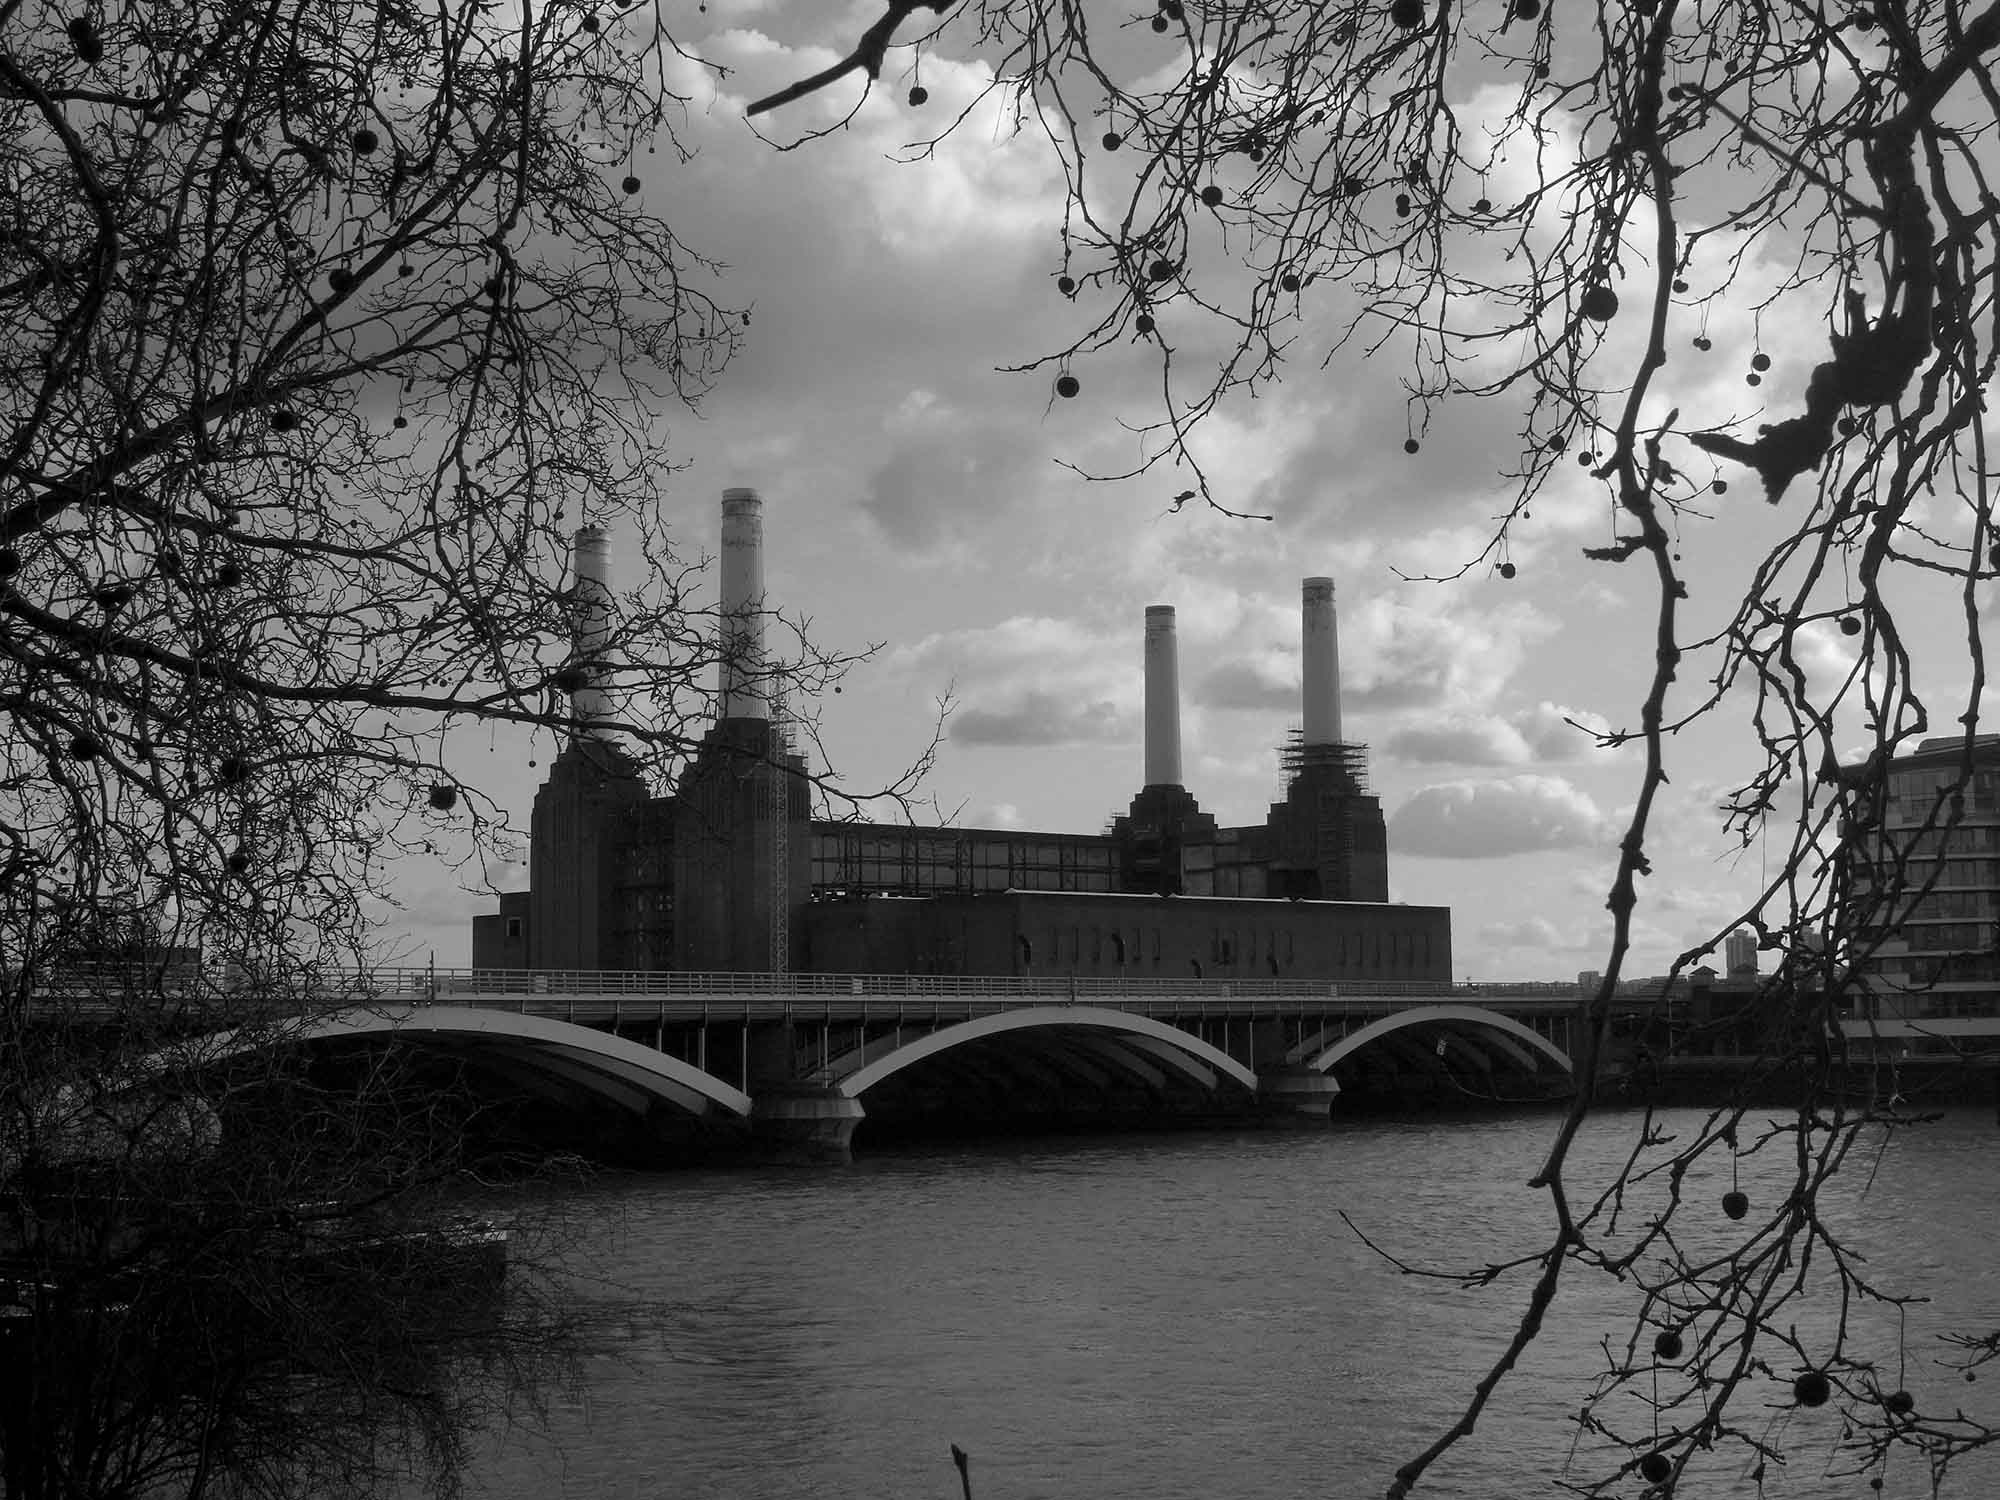 Battersea Power Station, London | Photo from private collection